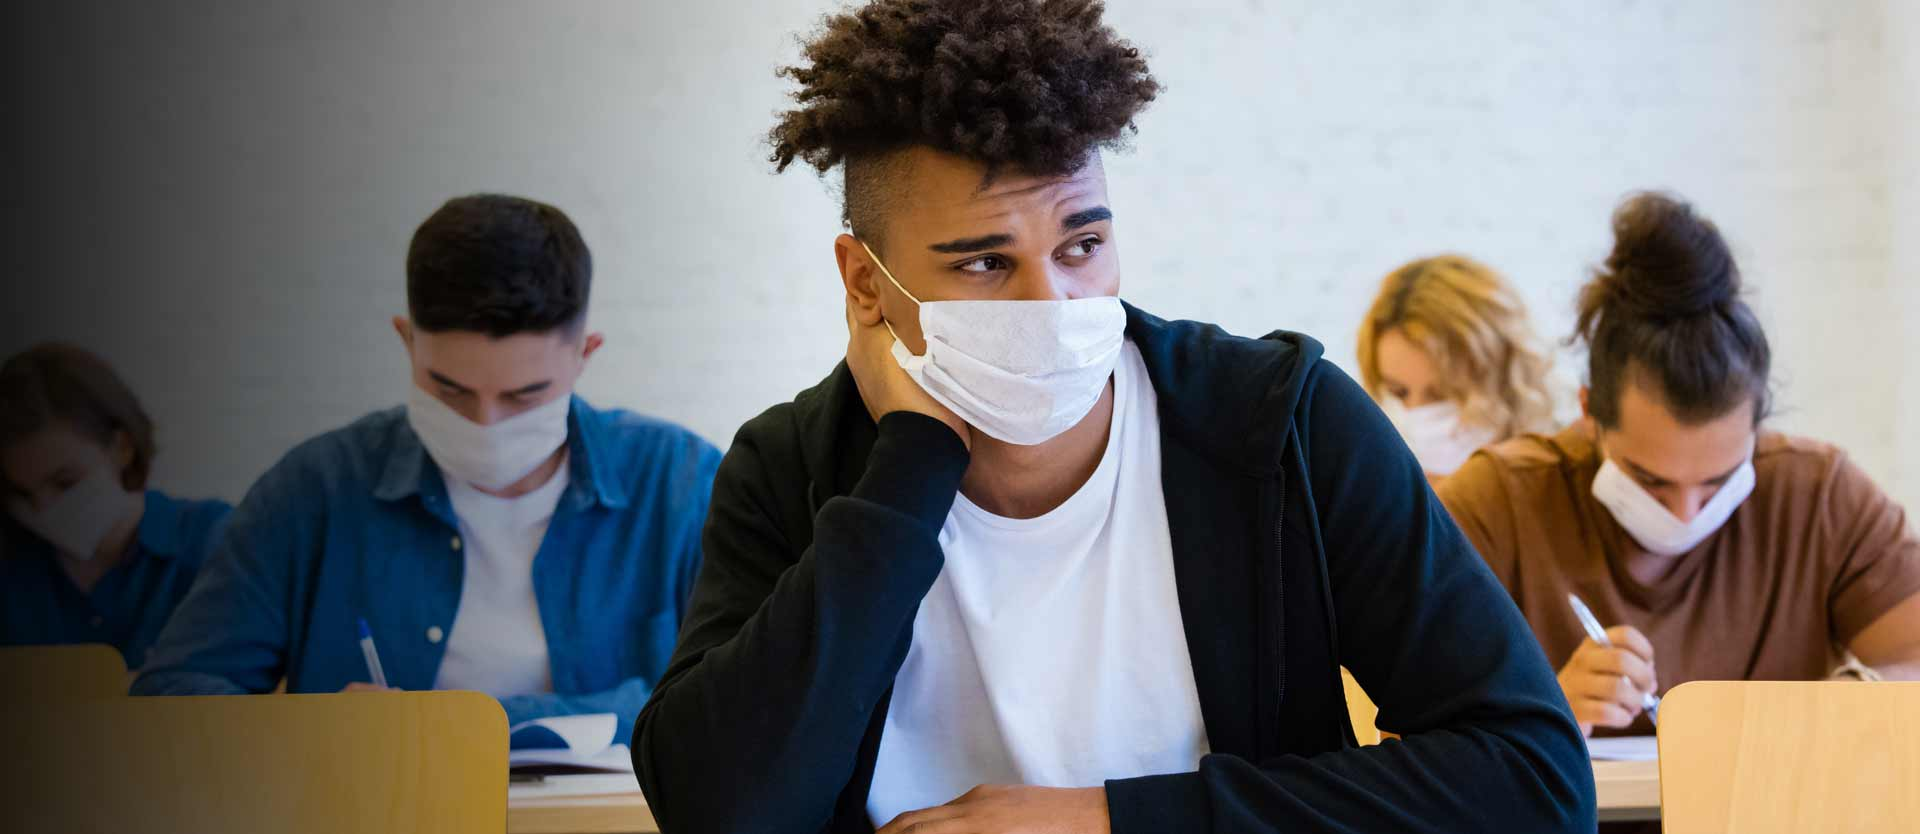 students wearing masks in the classroom